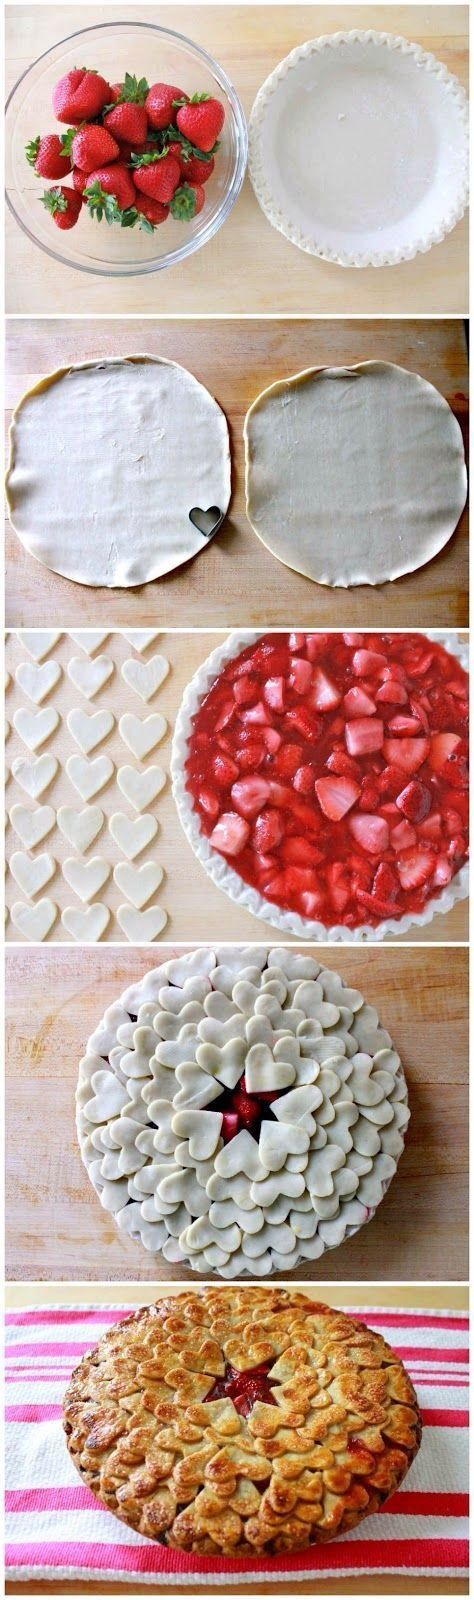 heart strawberry pie- perfect warm #Valentine's idea yum yum!